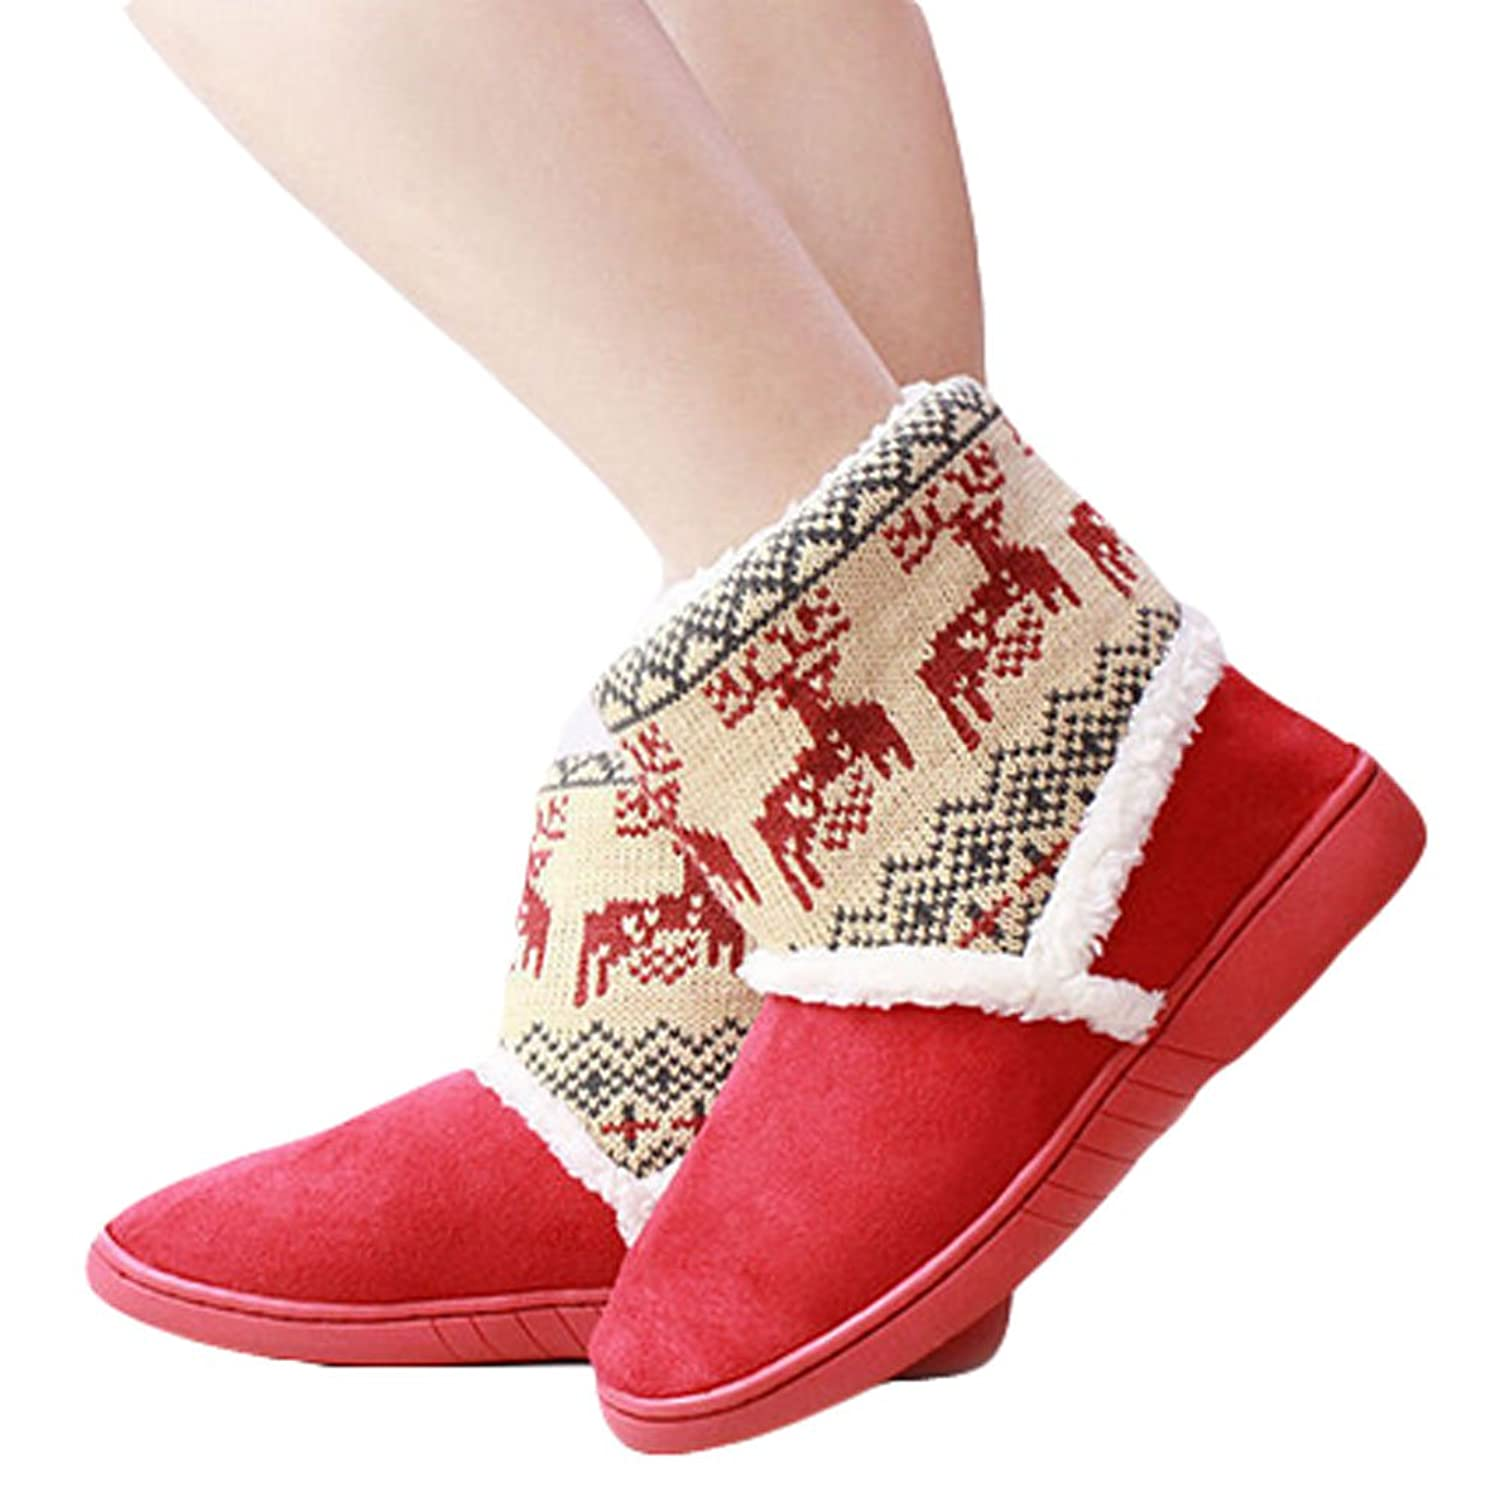 King Ma Women's Winter Warm Suede Thicken Flat Ankle Snow Boots